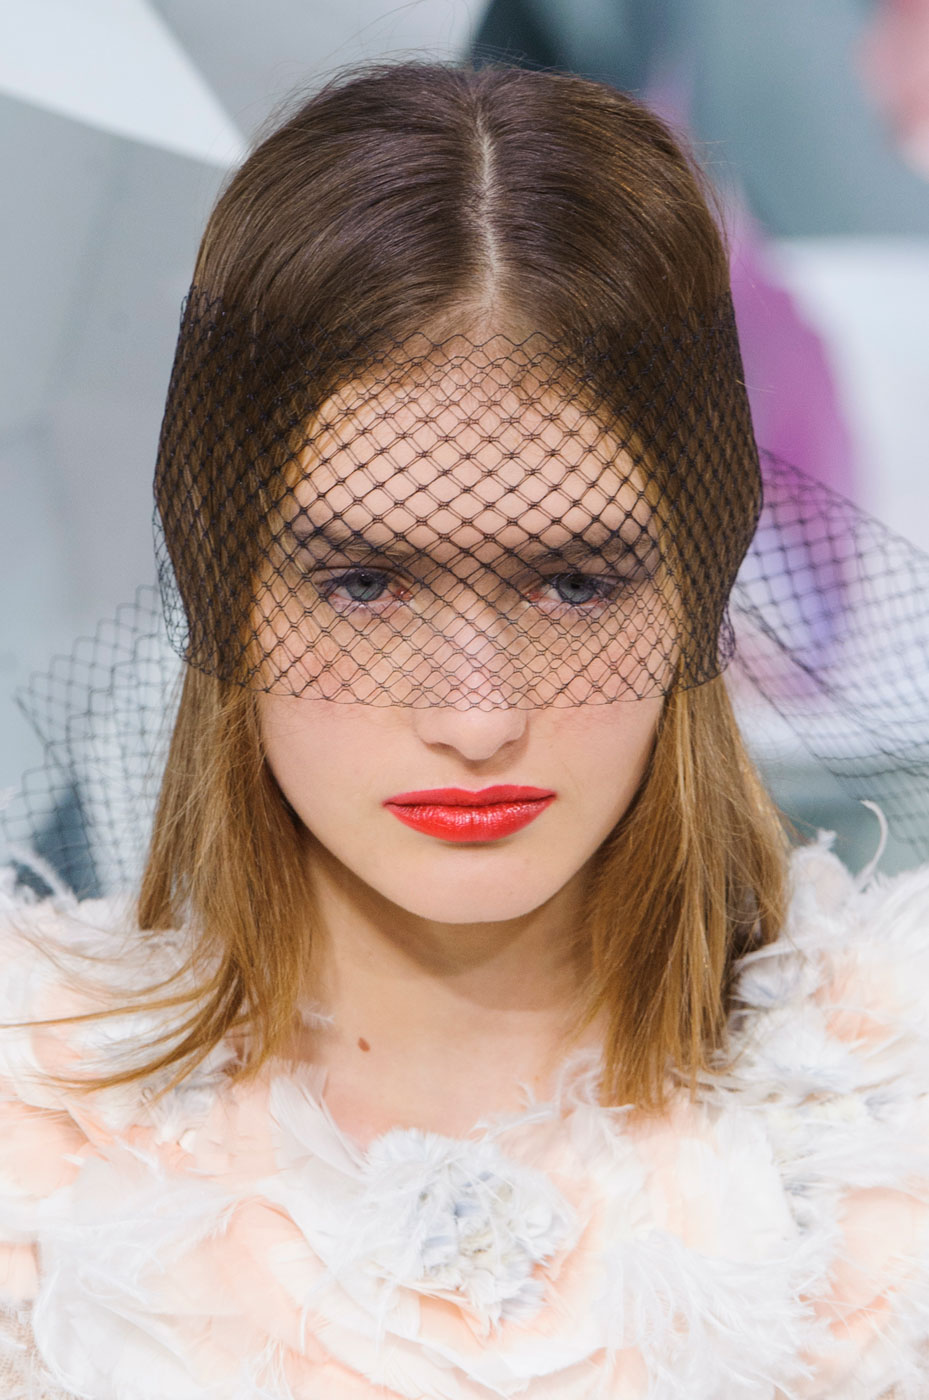 Chanel-fashion-runway-show-close-ups-haute-couture-paris-spring-summer-2015-the-impression-135